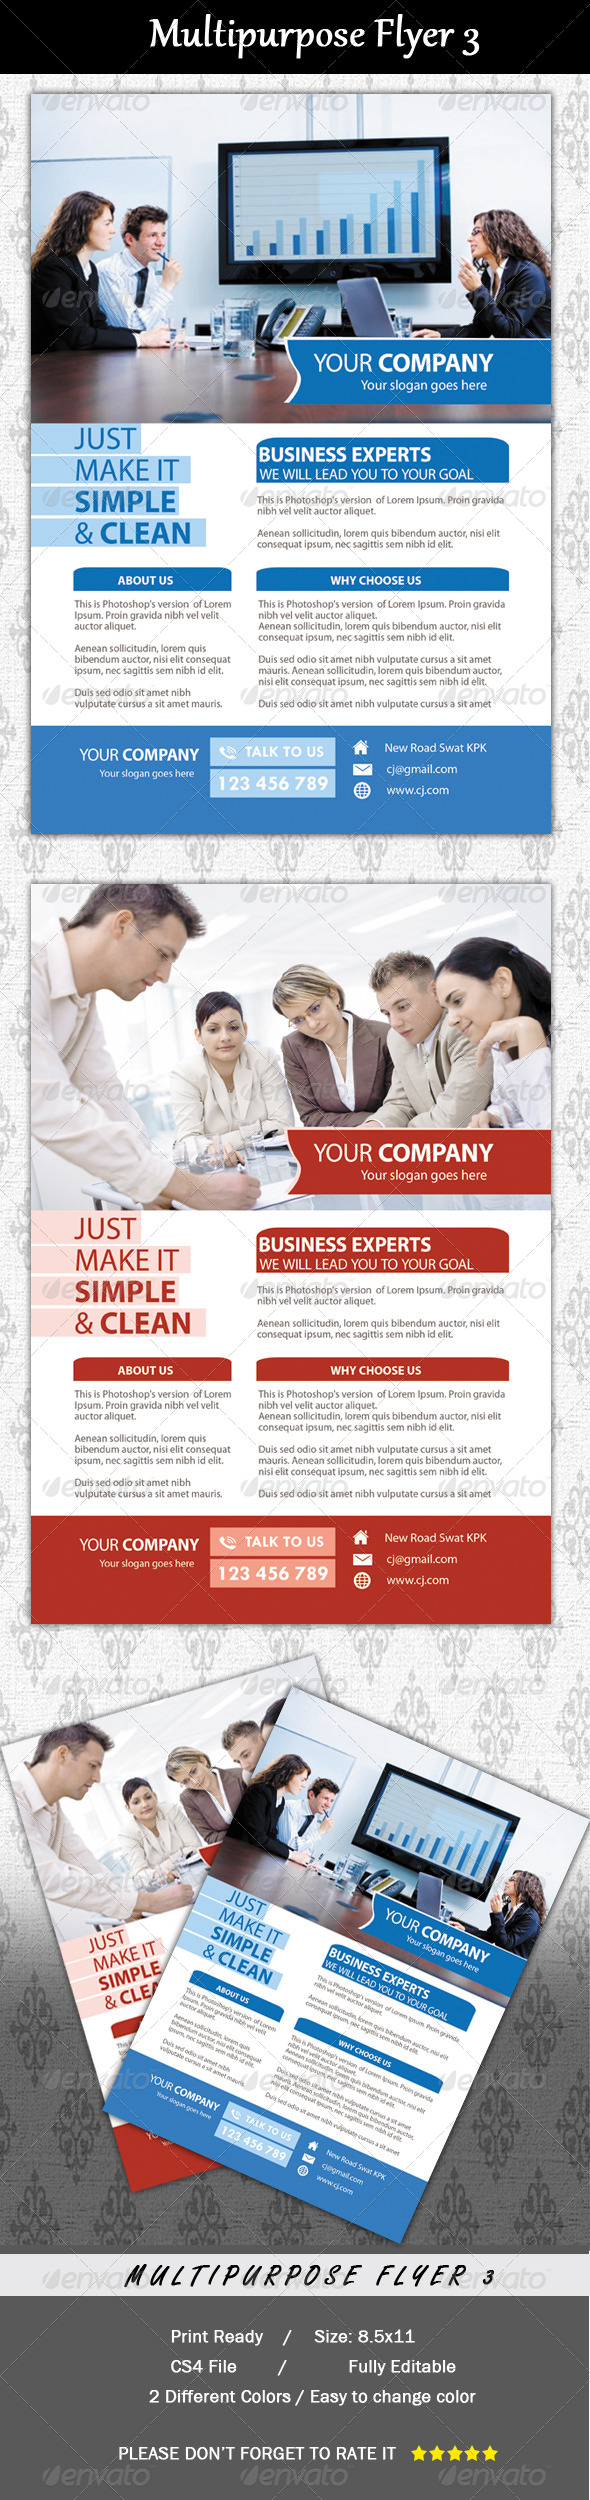 Multipurpose Flyer 3 - Corporate Flyers